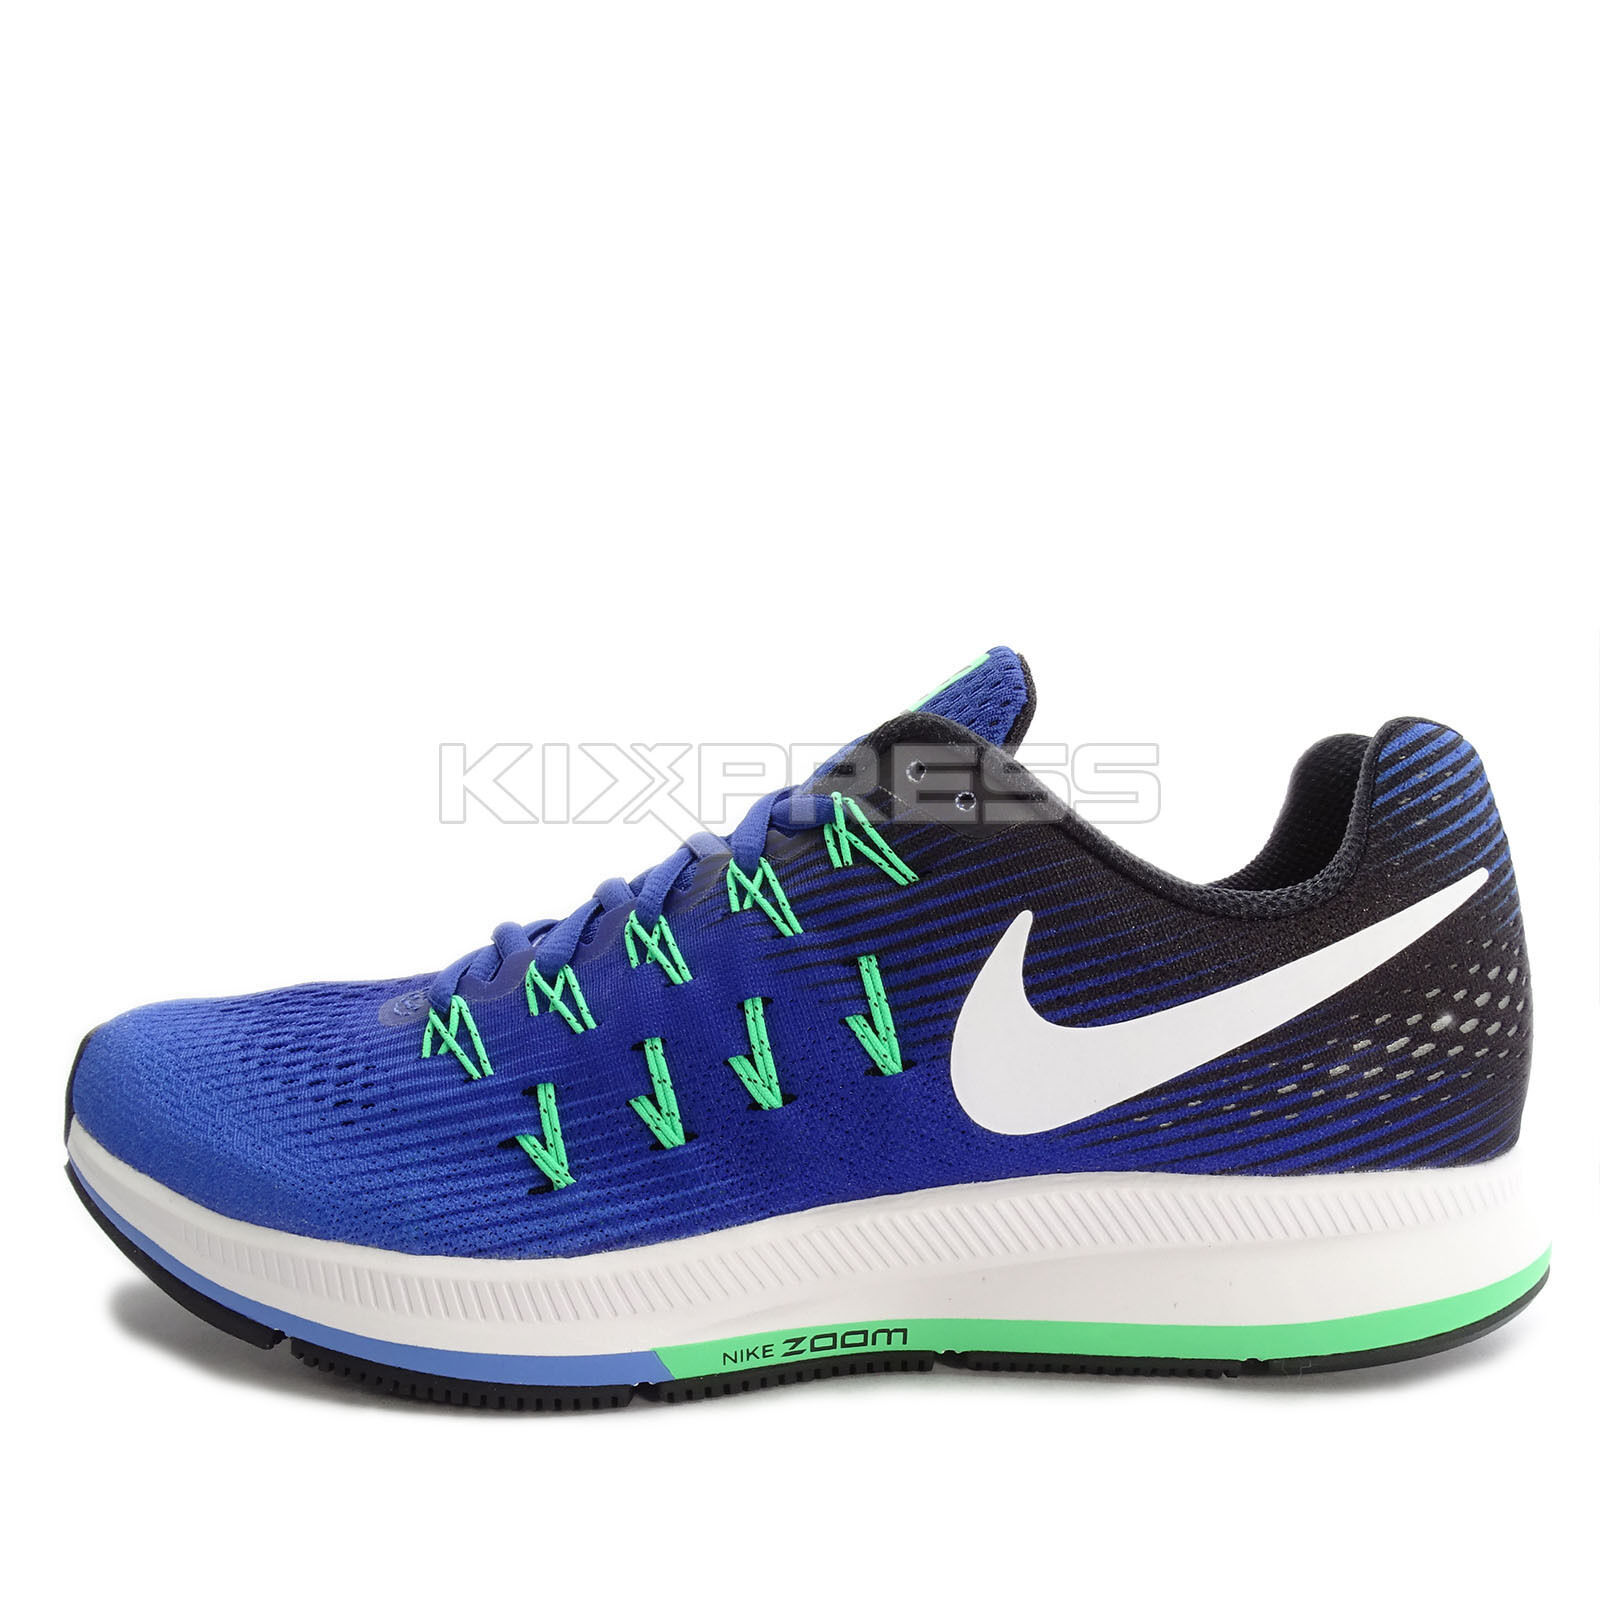 Nike Air Zoom Pegasus 33 Price reduction Running Medium Blue/White-Navy-Black New shoes for men and women, limited time discount